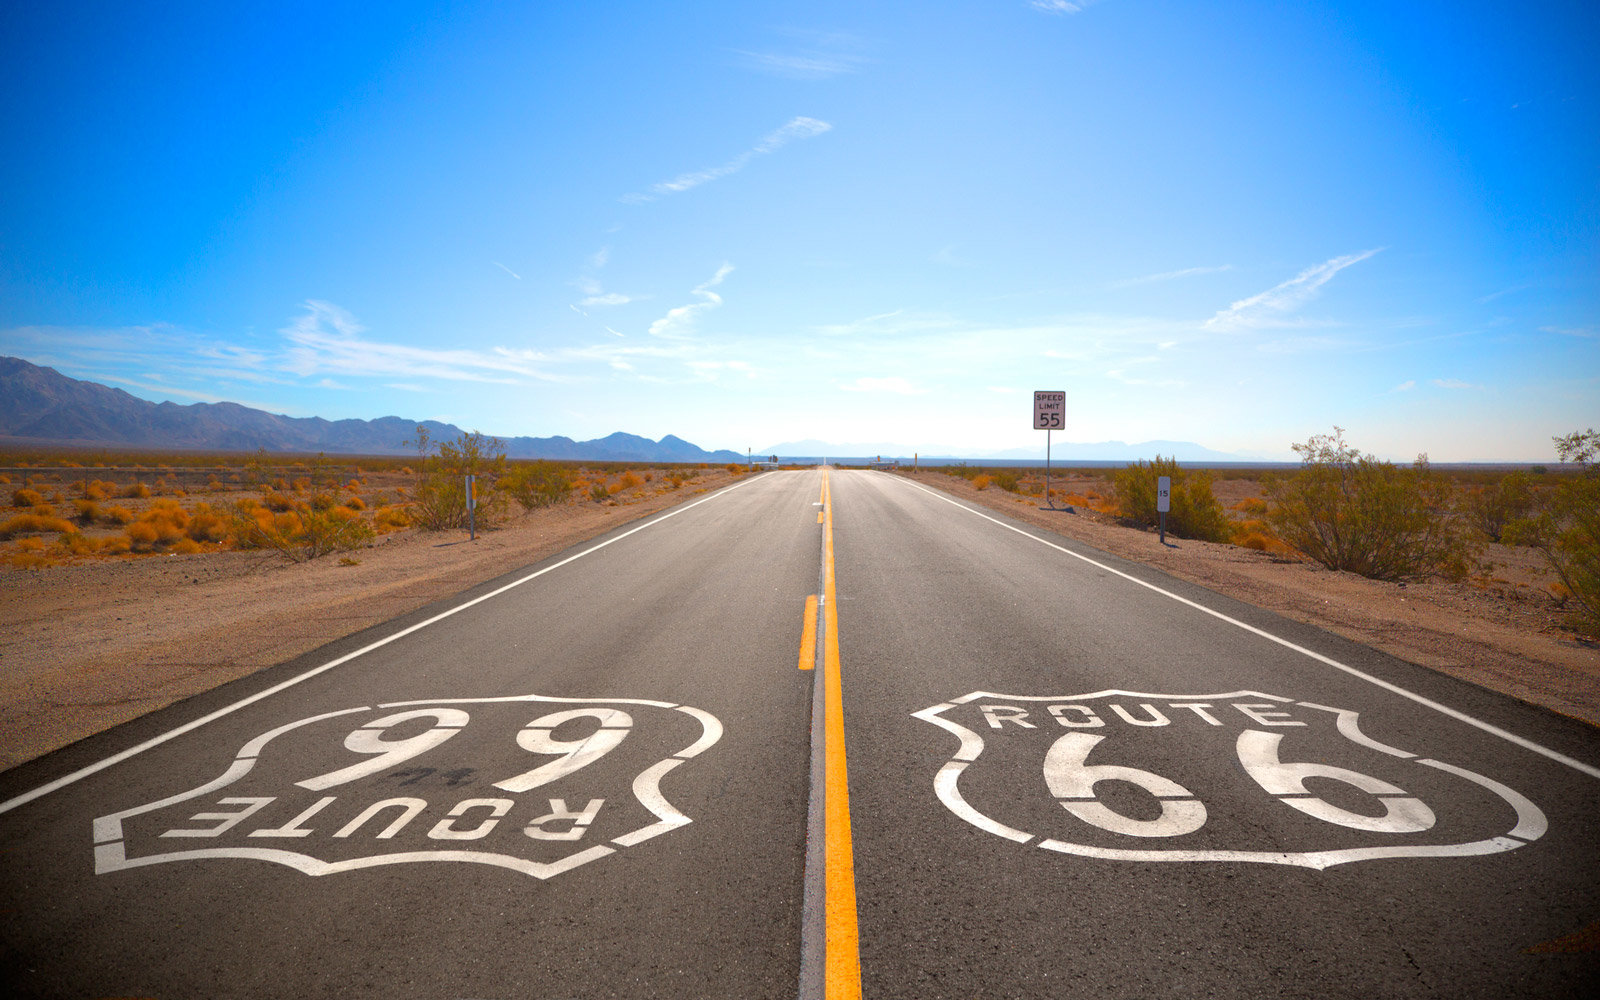 How Much It Costs to Take an Epic 2,400-mile Road Trip on Route 66